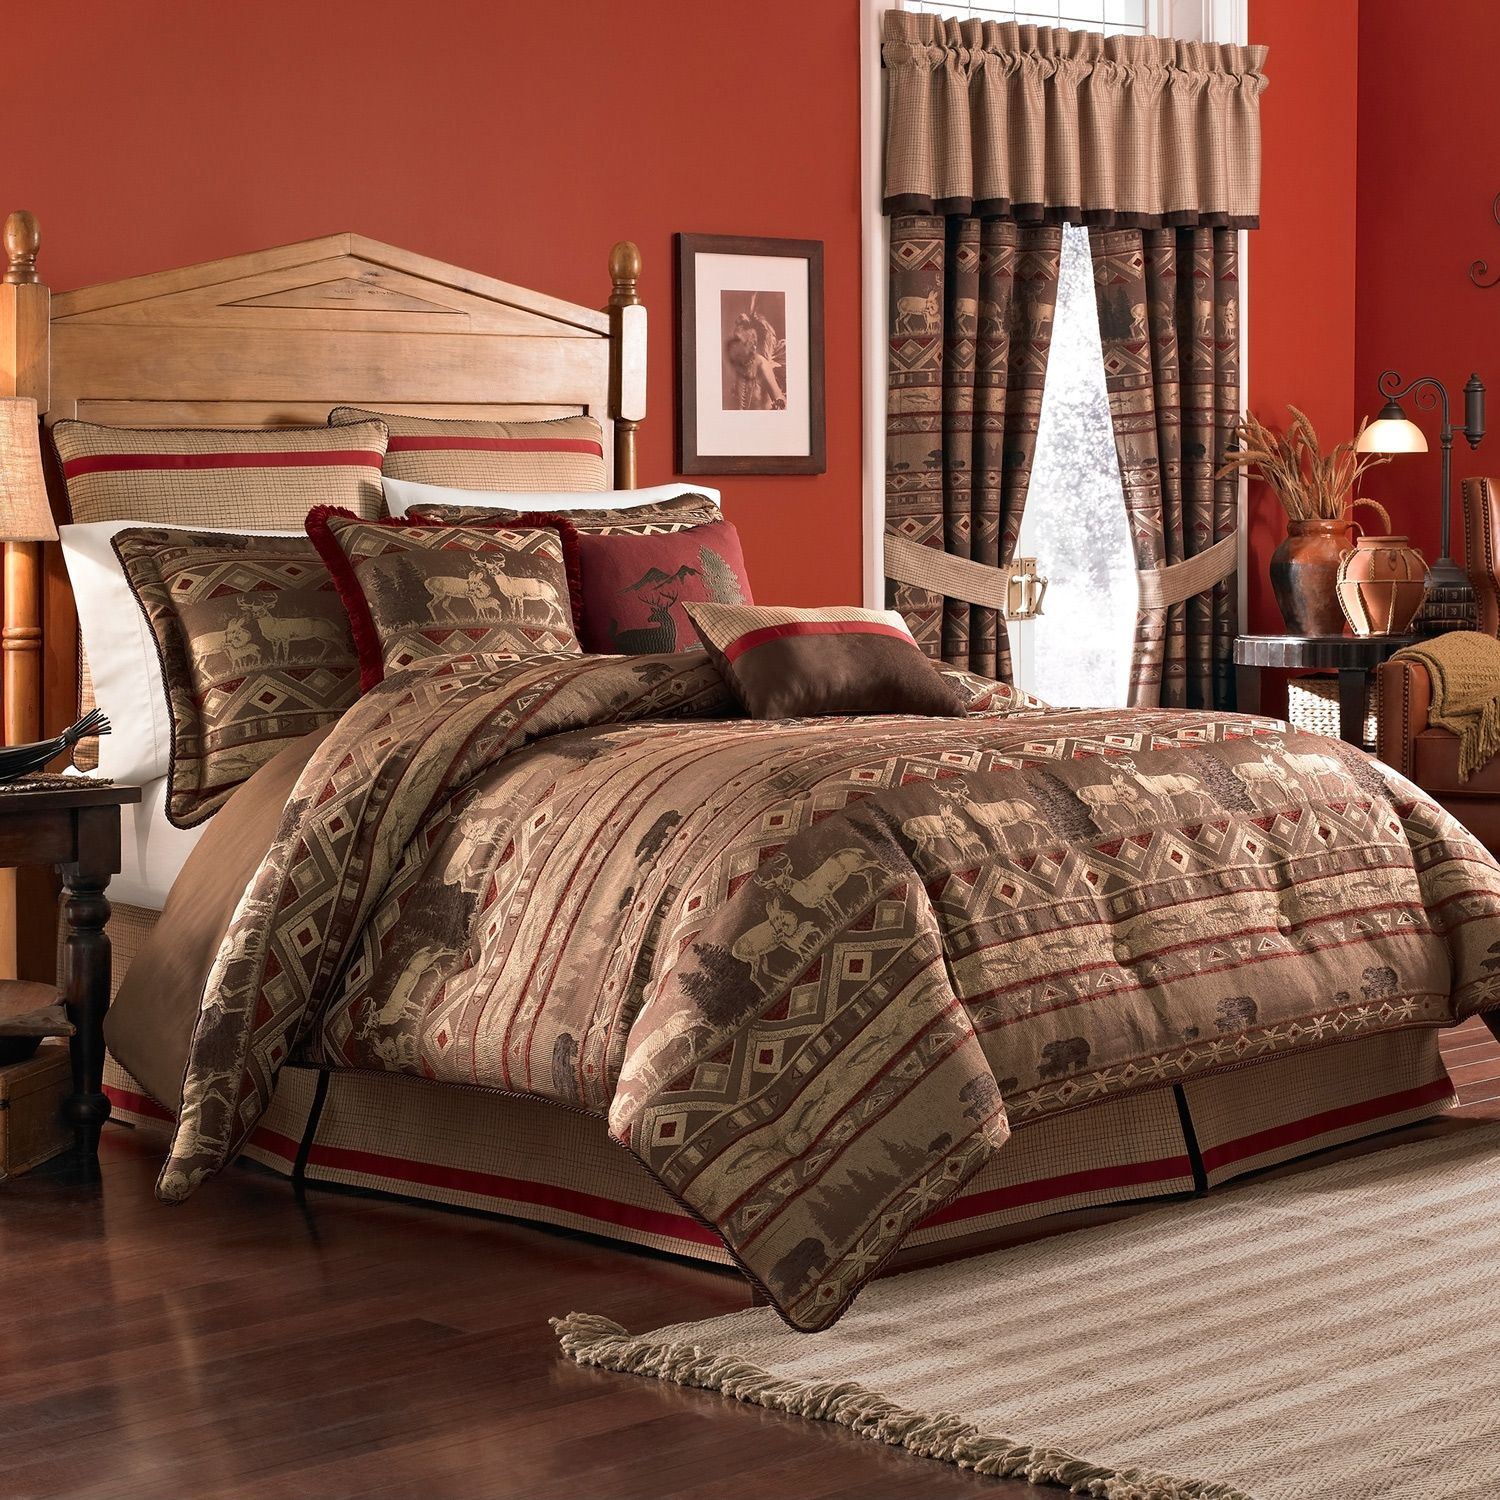 Bedroom Design Comfy California King Bedding For Bedroom Design